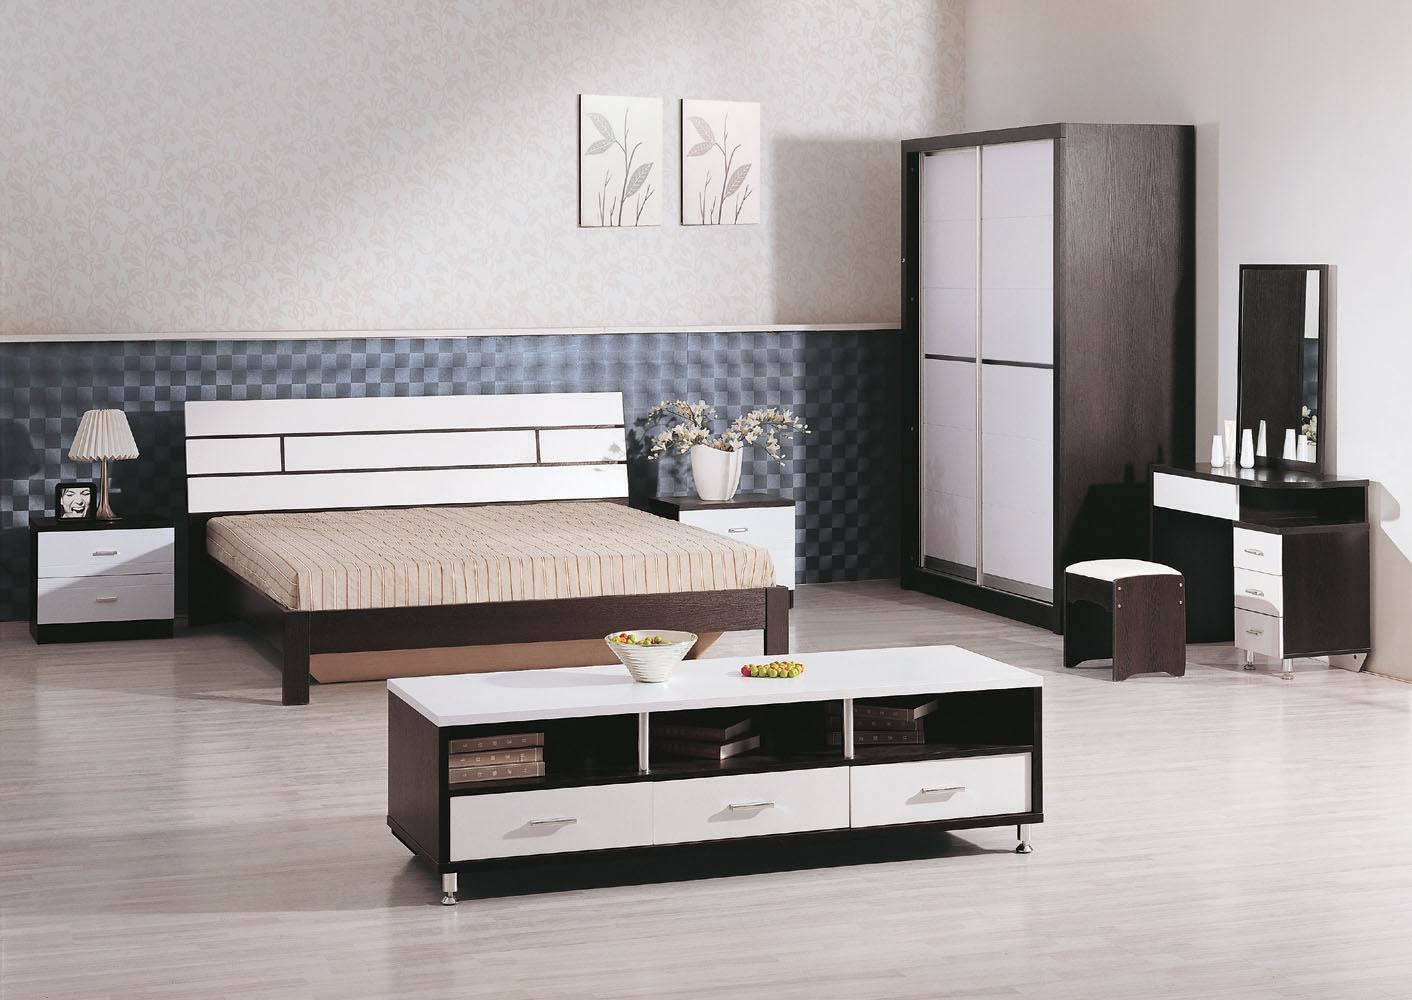 China Bedroom Sets 8821 China Bedroom Sets Bedroom Furniture